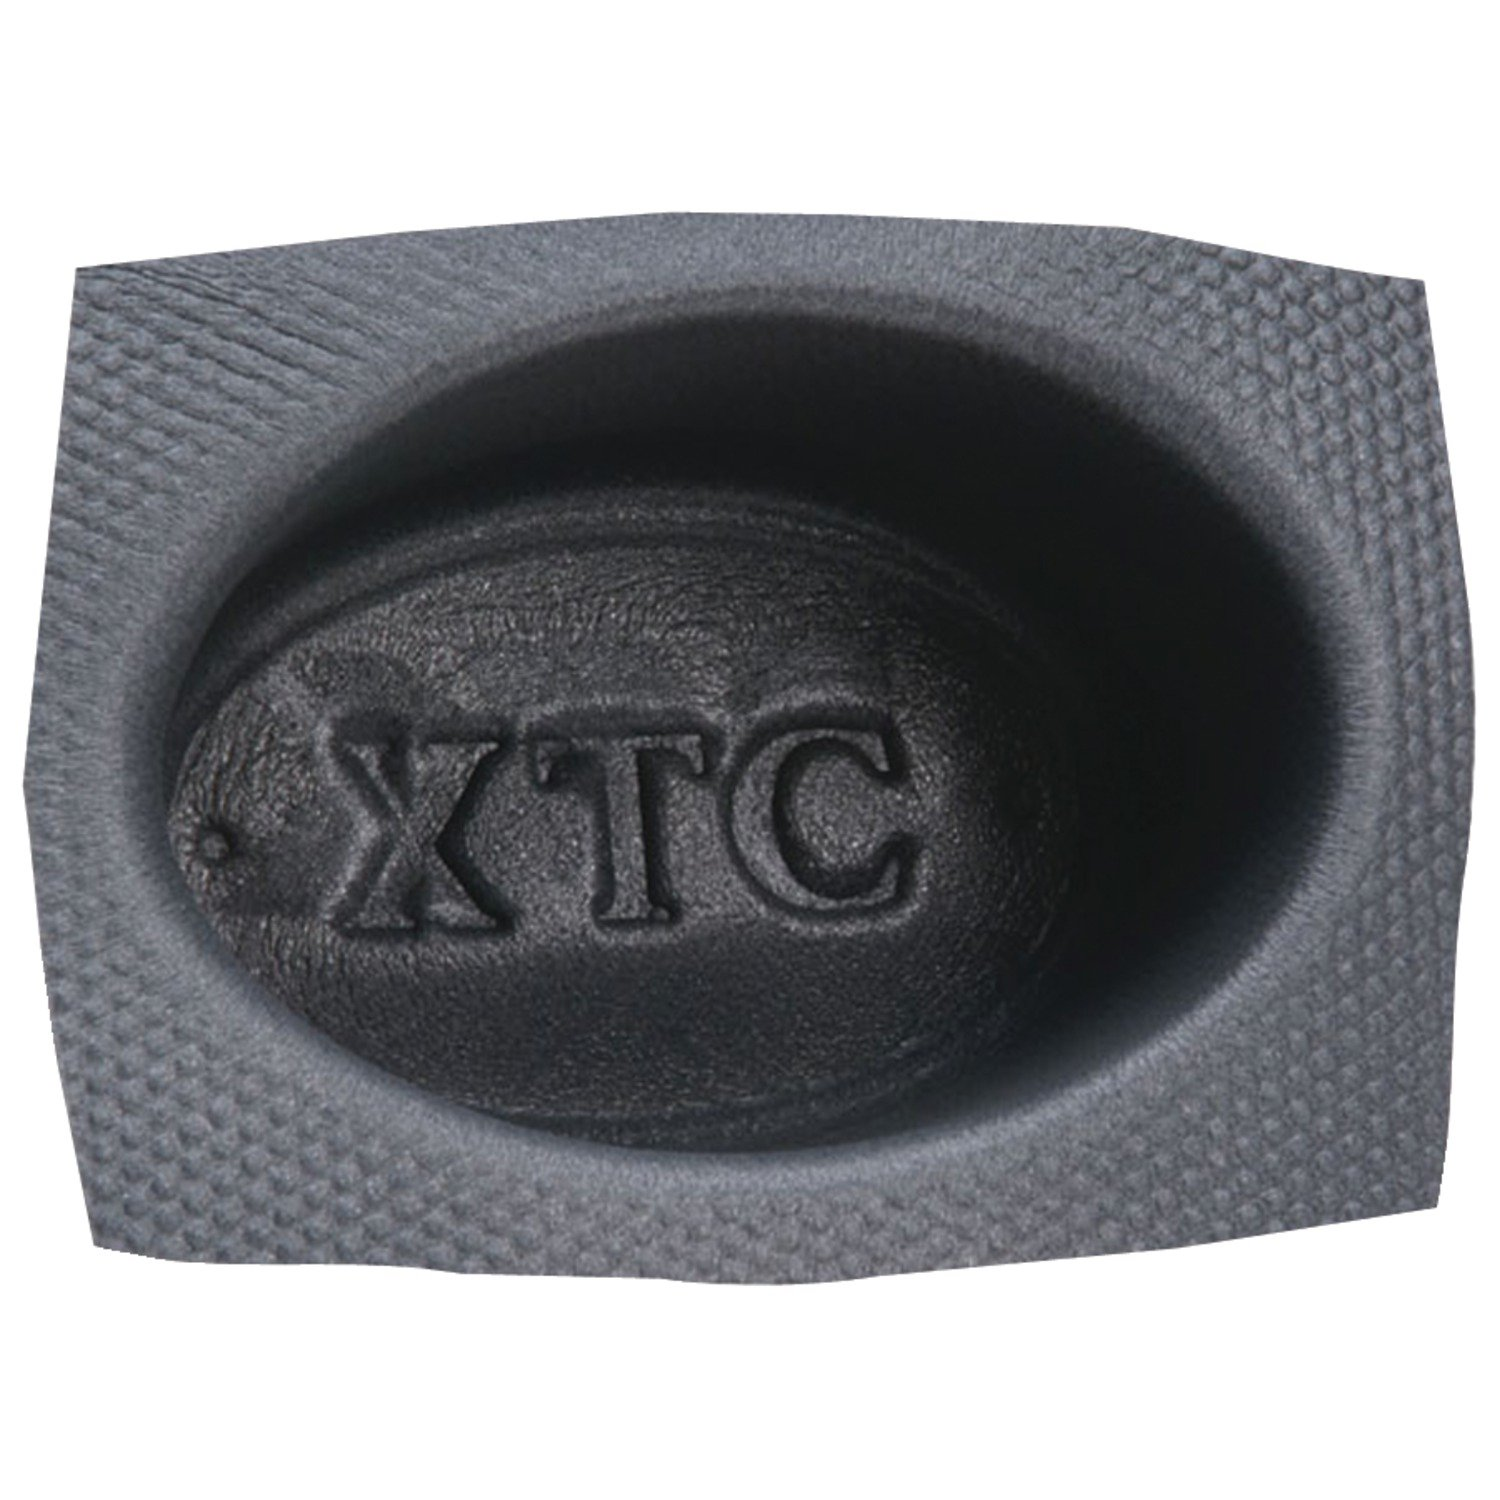 Install Bay VXT69 Speaker Baffle 6 By 9-Inch Oval Pair Metra Electronics Corporation